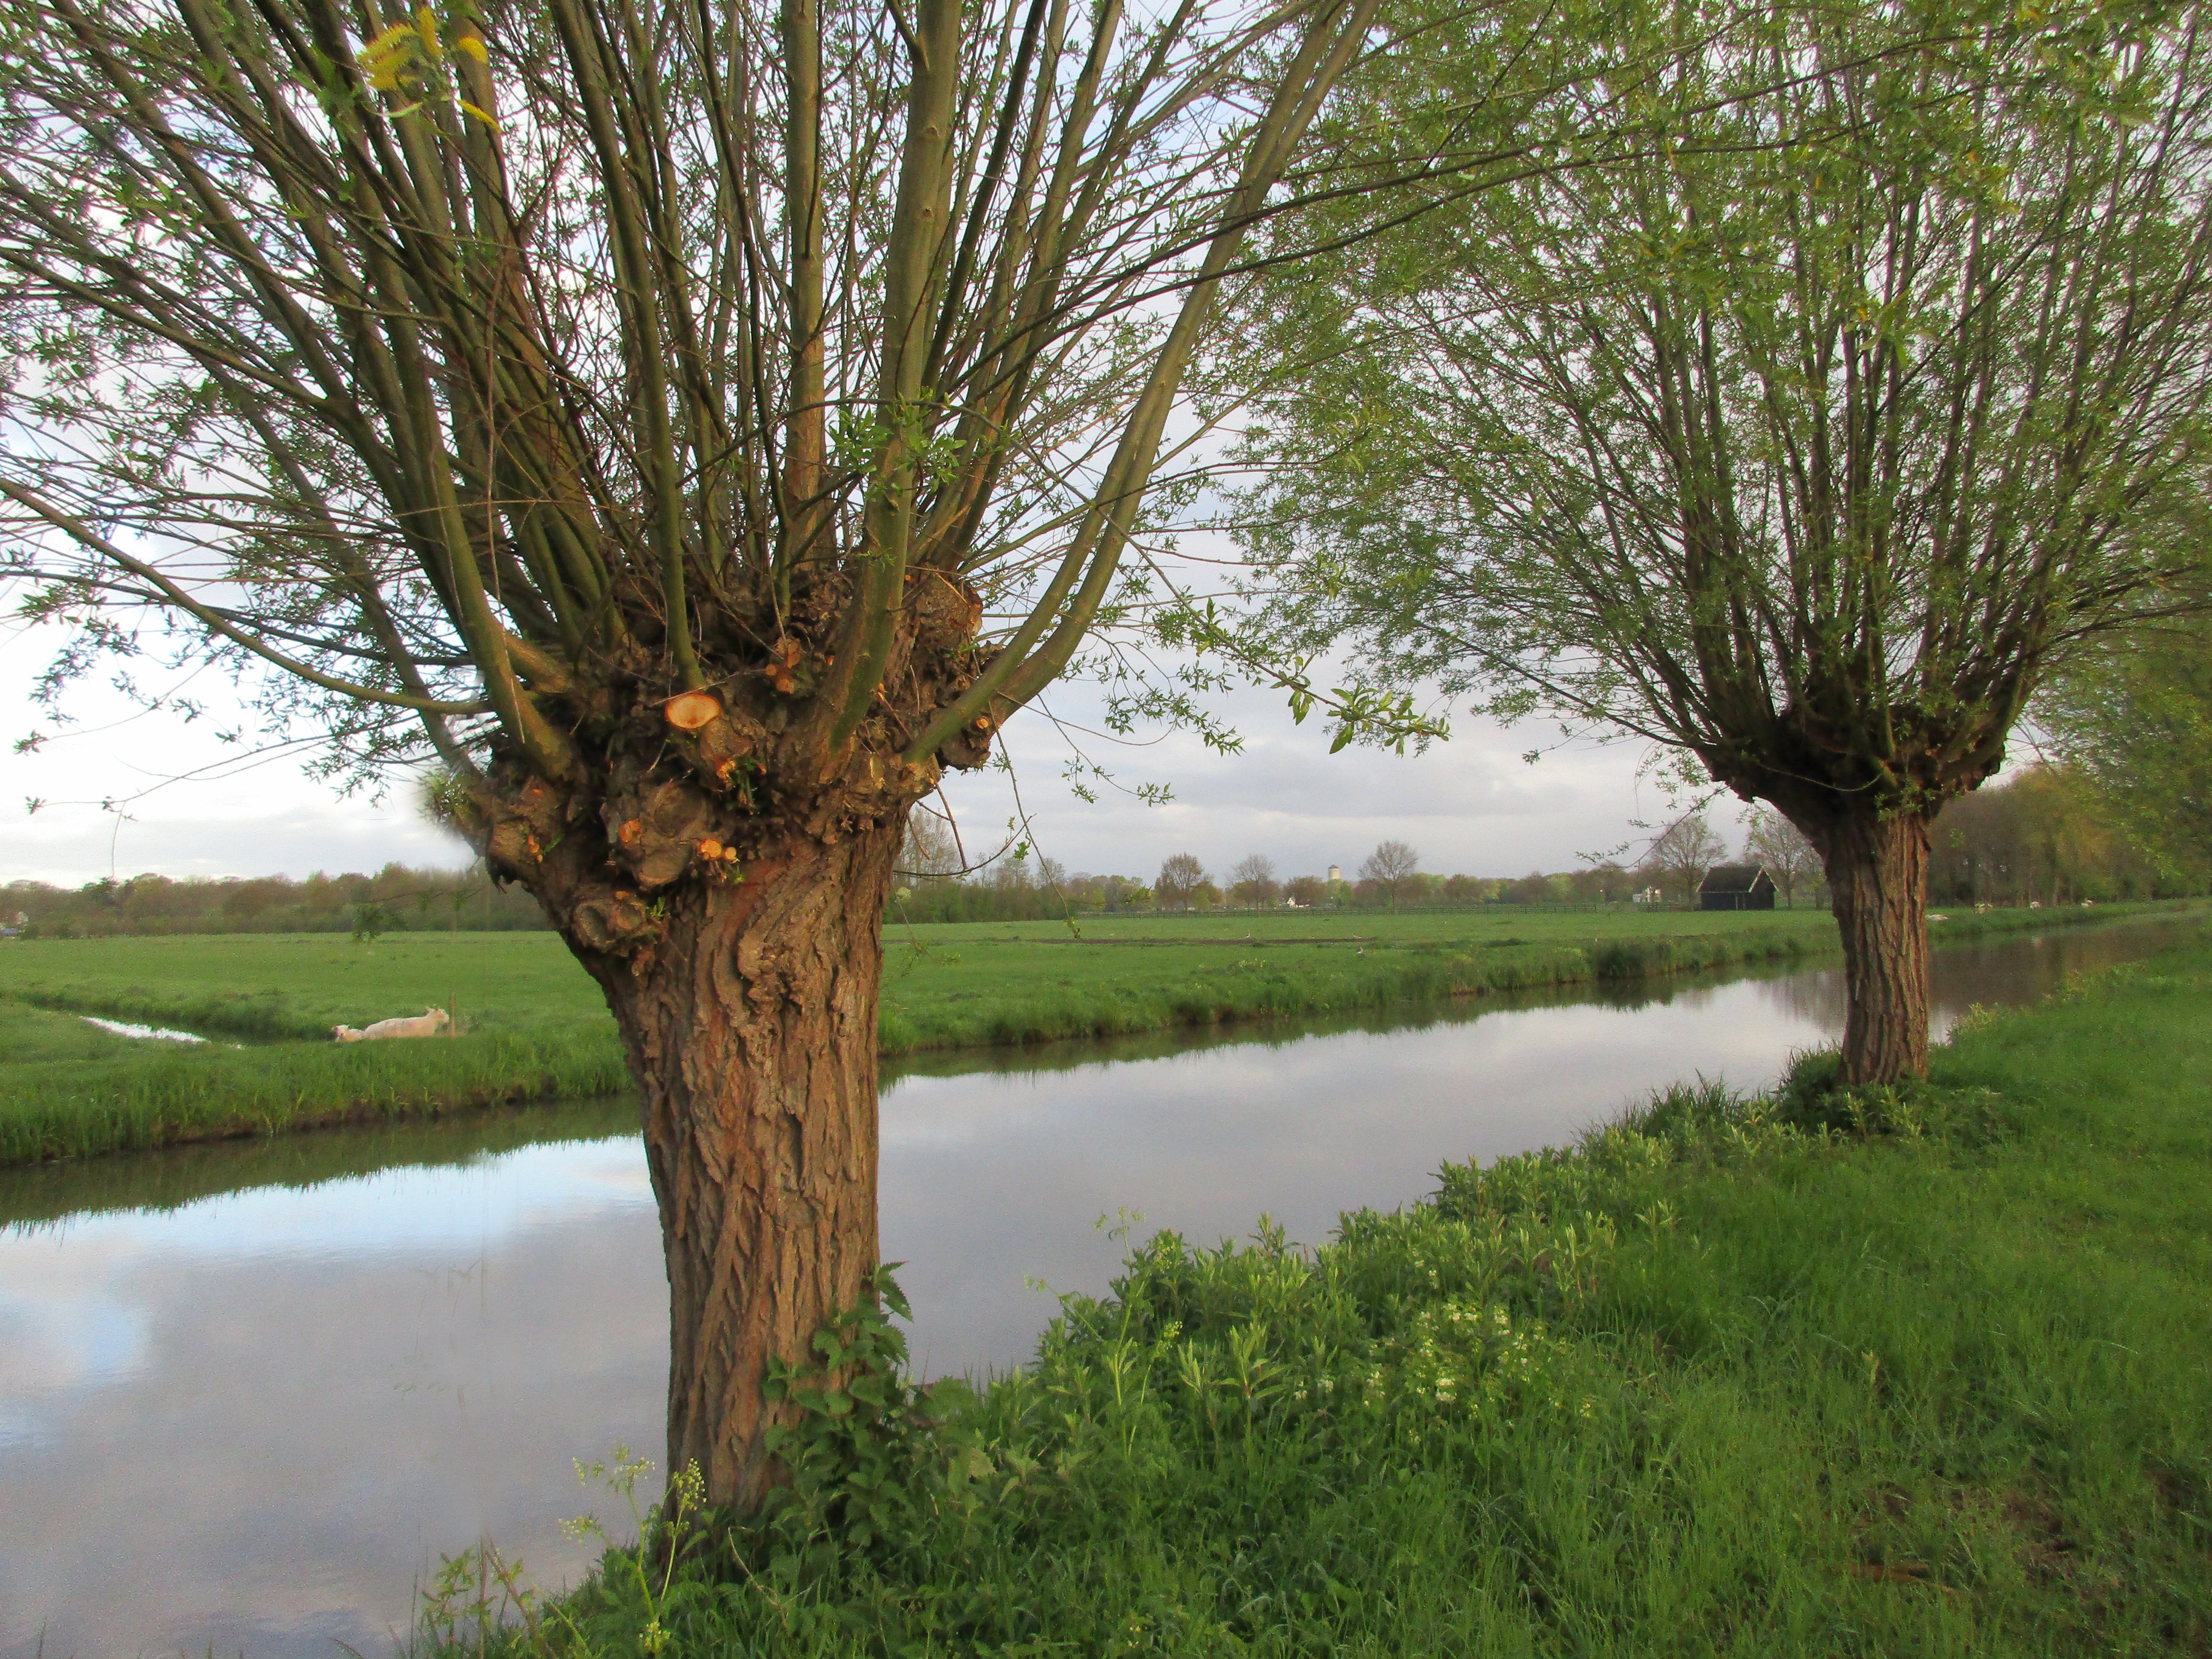 Free stock photo of dutch landschape, willow trees